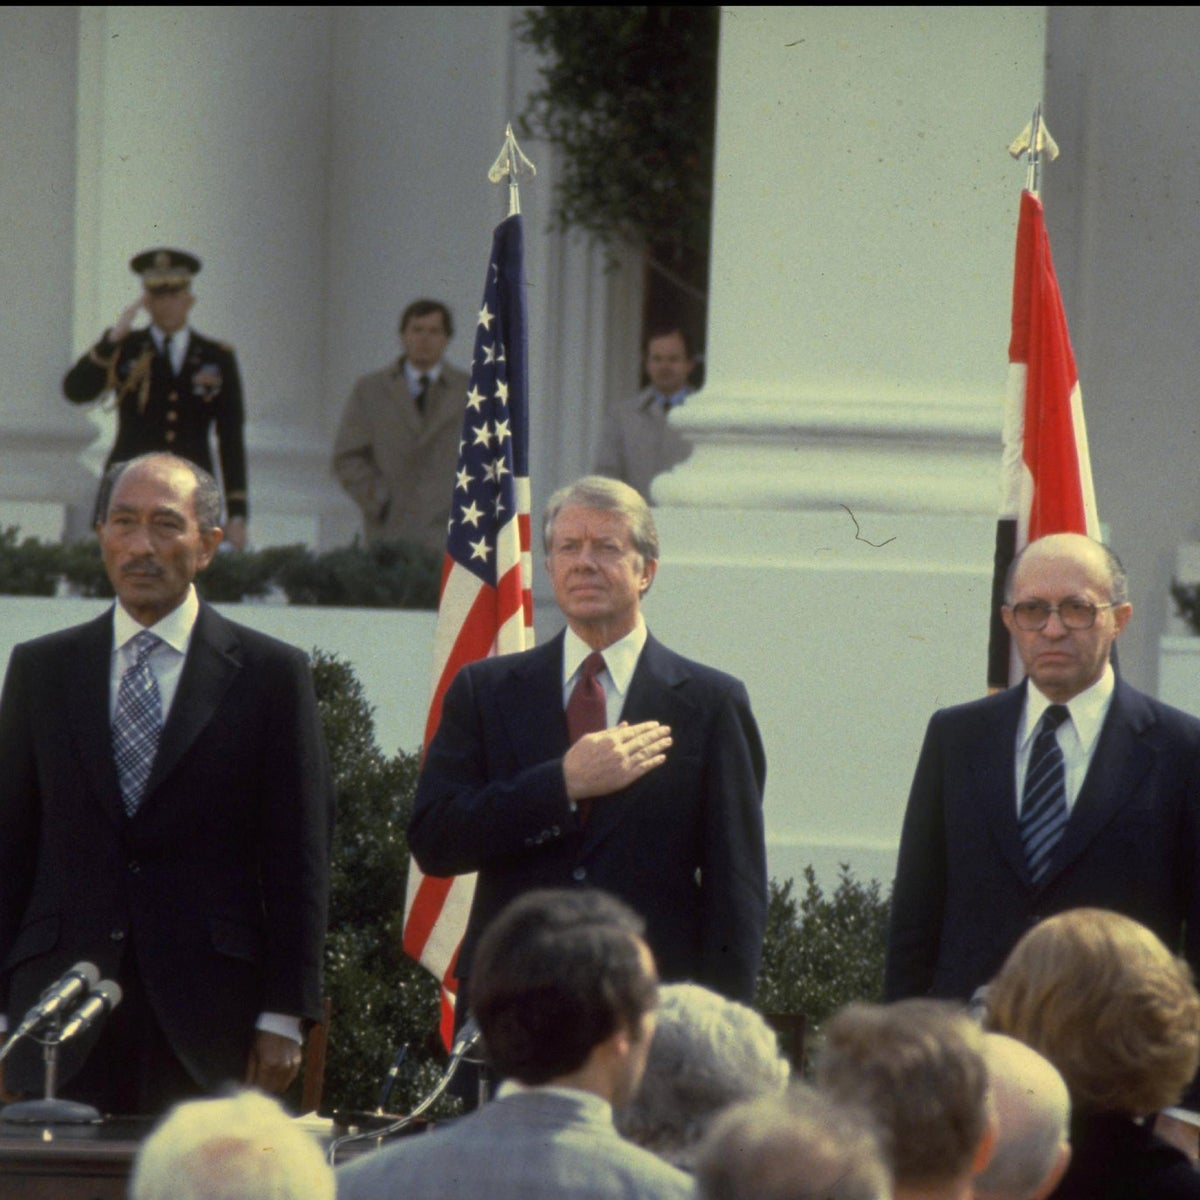 Anwar Sadat, Jimmy Carter and Menachem Begin at the signing of the Israeli-Egyptian peace agreement, March 26, 1979.